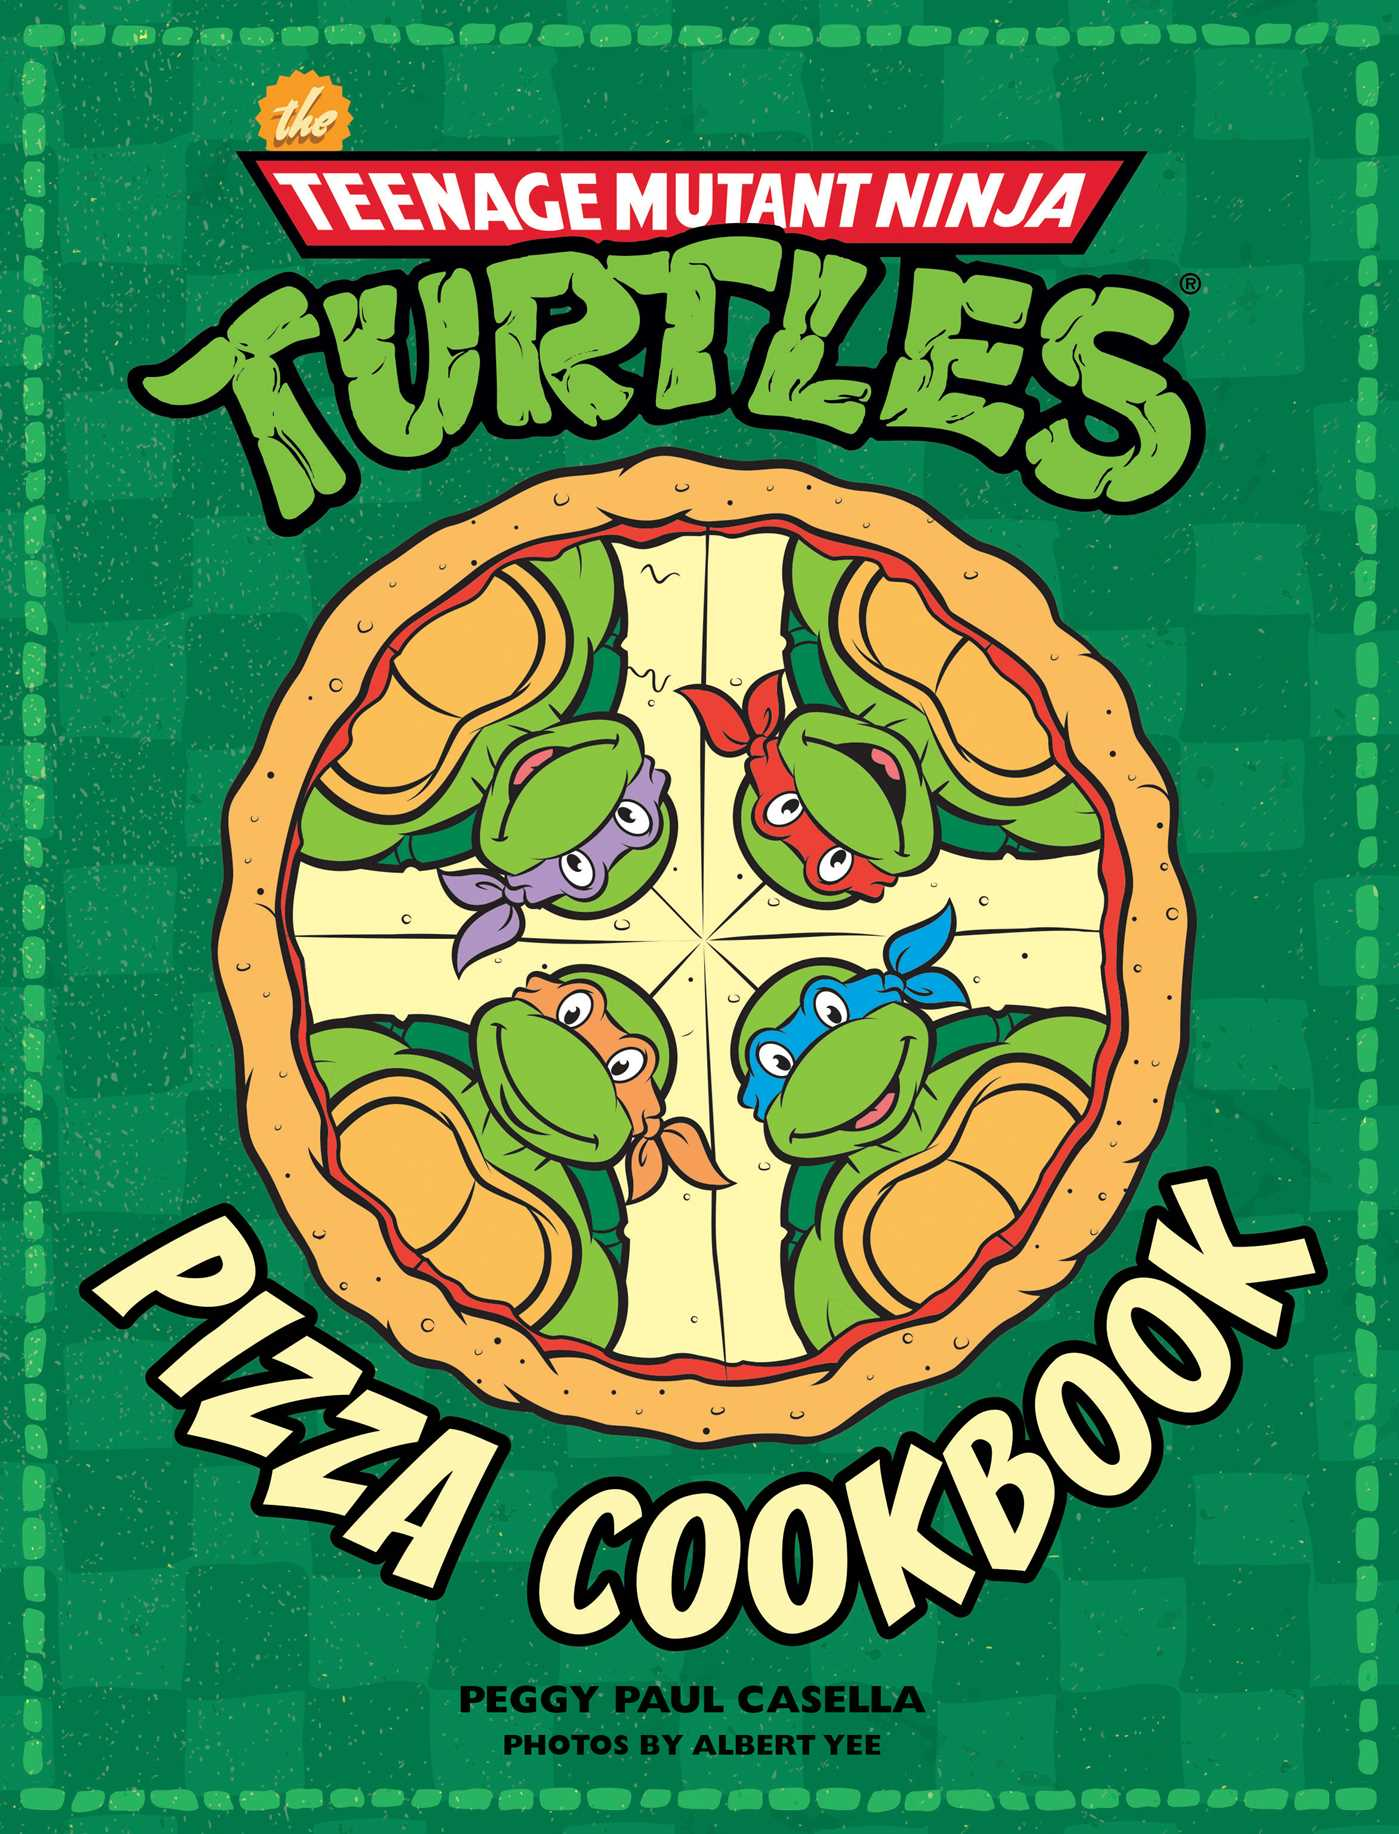 The teenage mutant ninja turtles pizza cookbook 9781608878314 hr